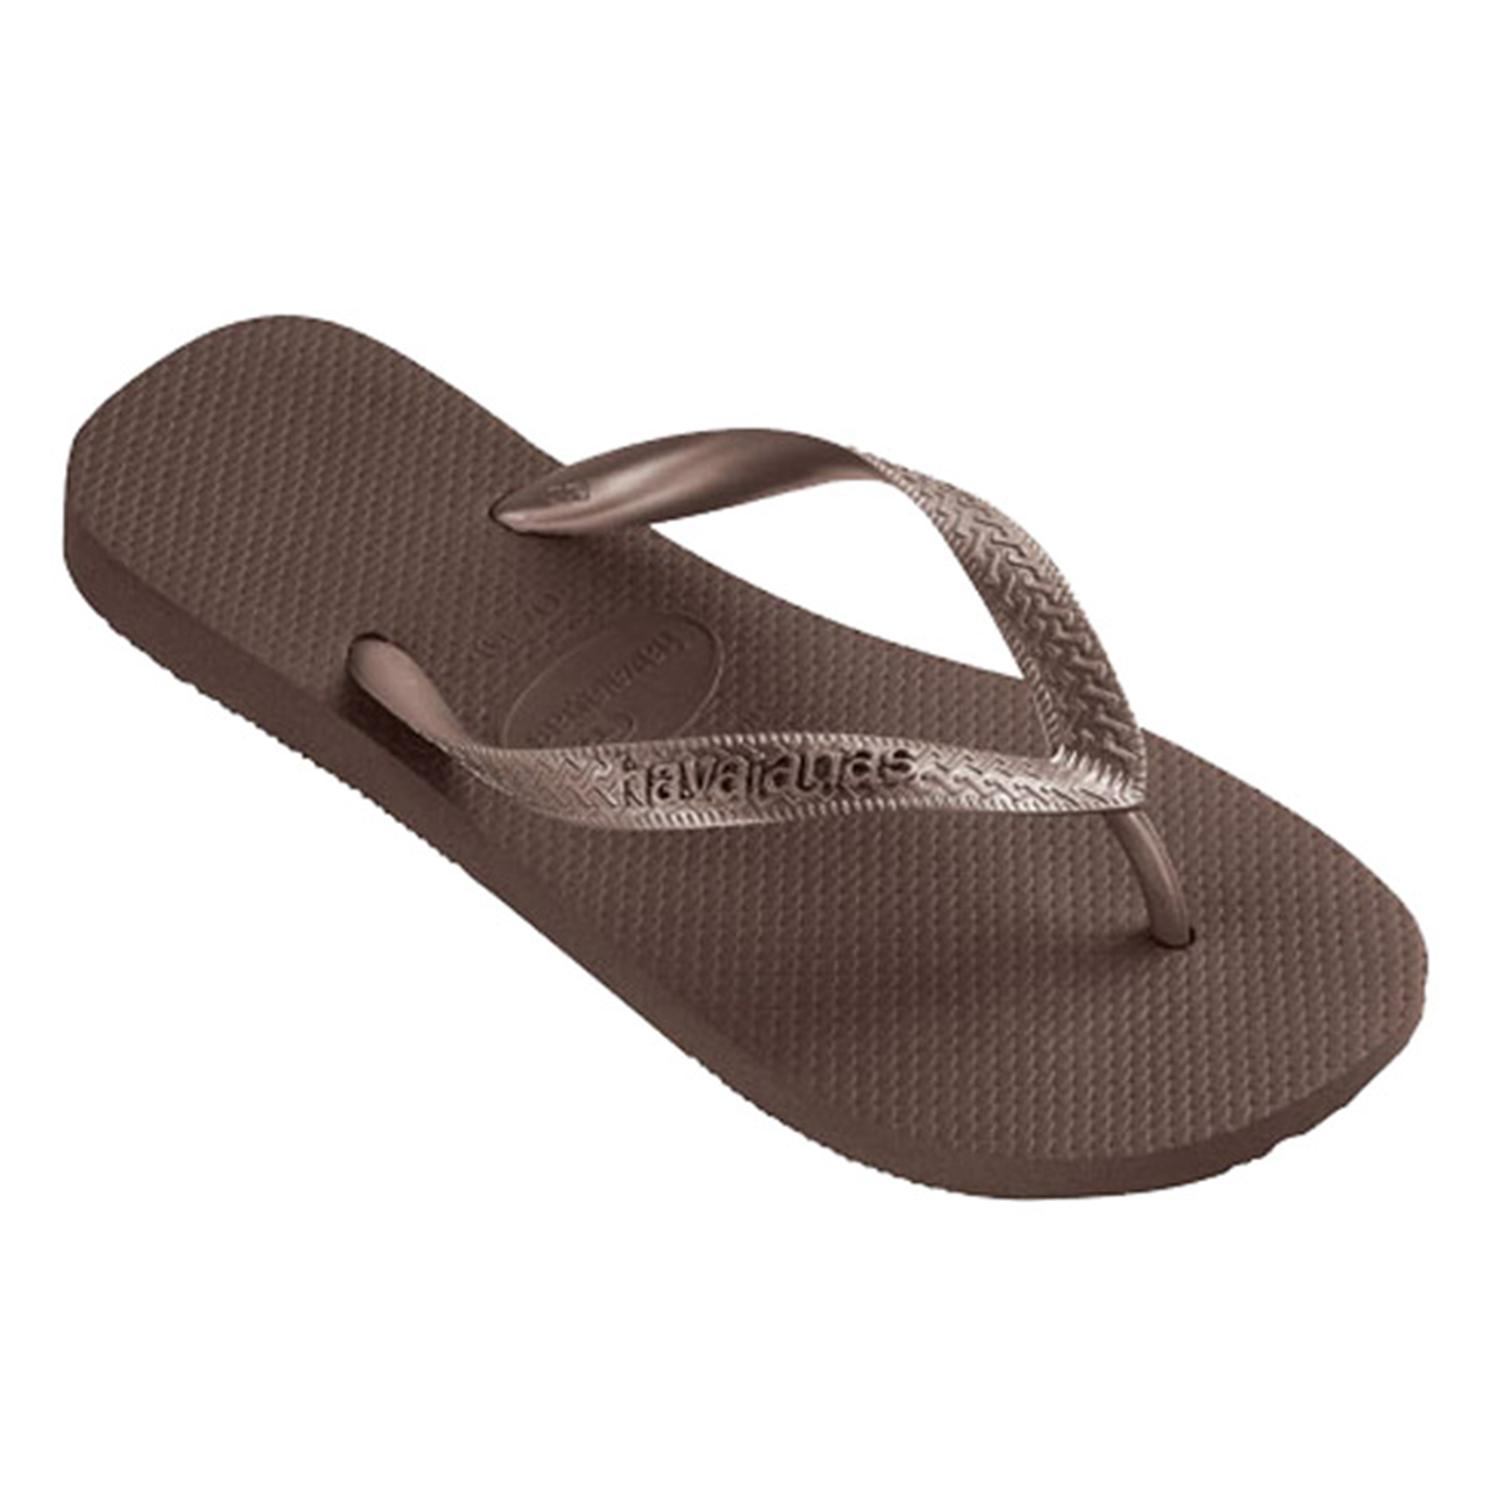 Brilliant The Vancouver, British Columbiabased Label, Which Launched Its Line Of Womens Flipflops And Sandals In December 2016  With Previous Stints At Brands Such